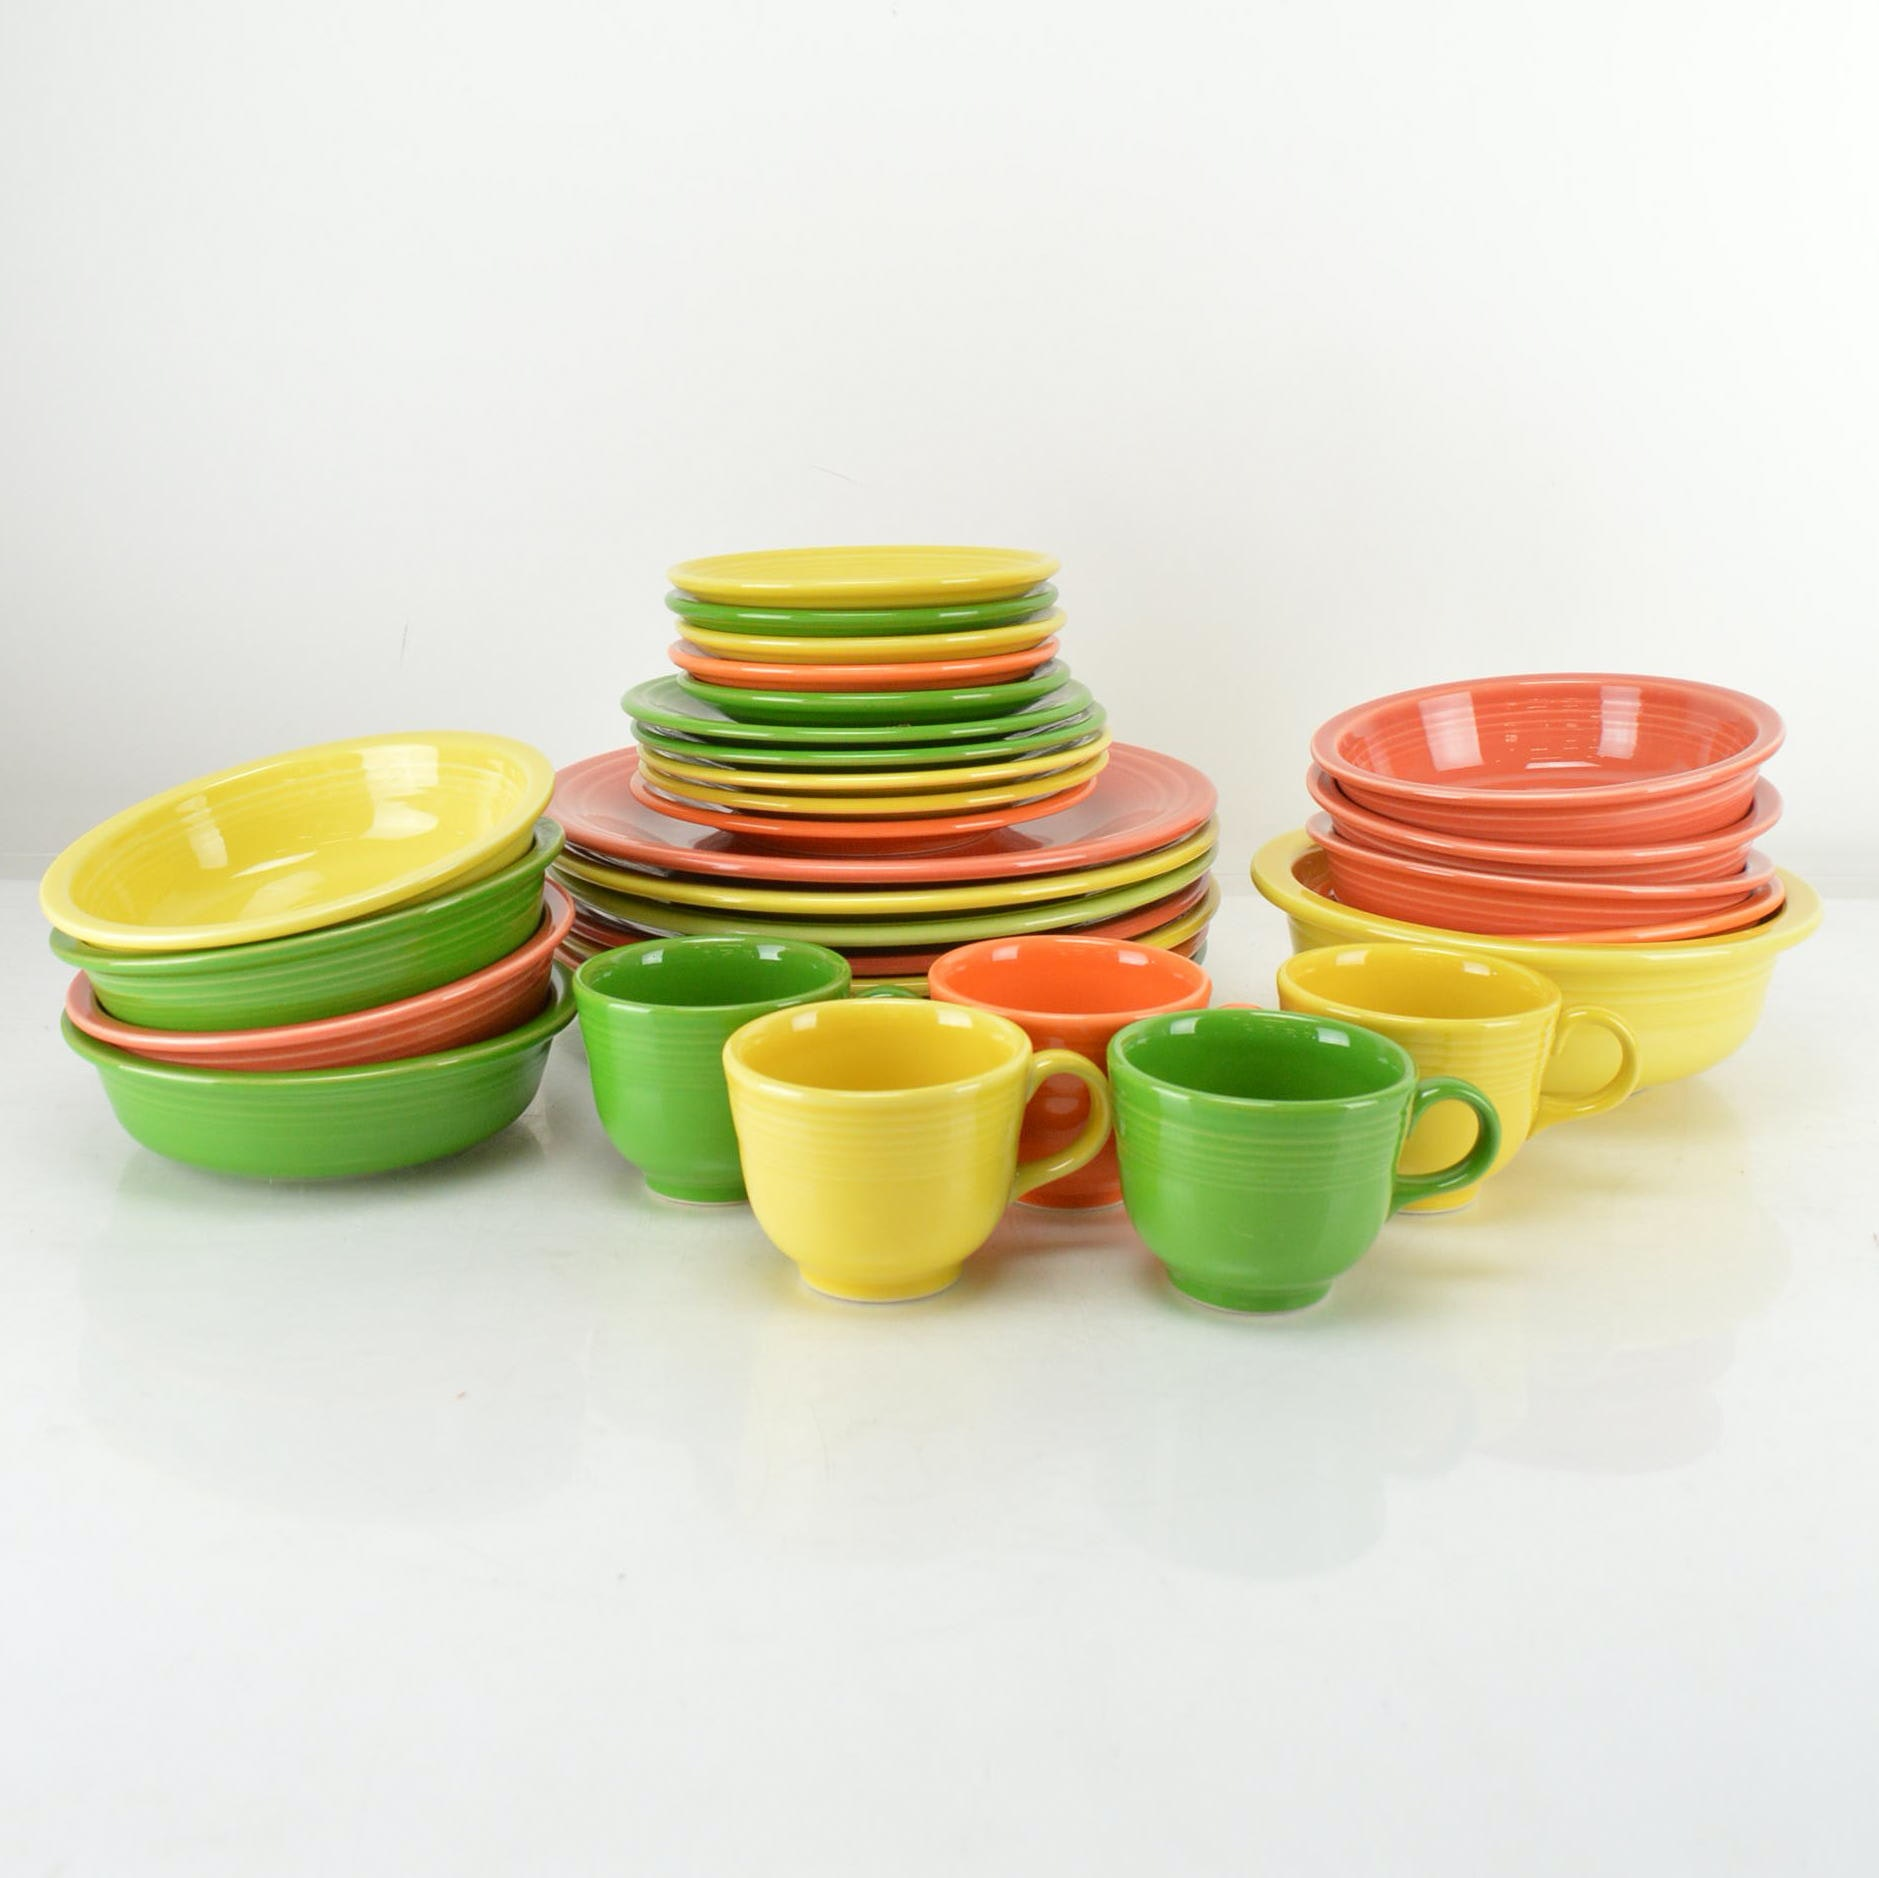 Fiestaware Plates, Bowls, and Teacups